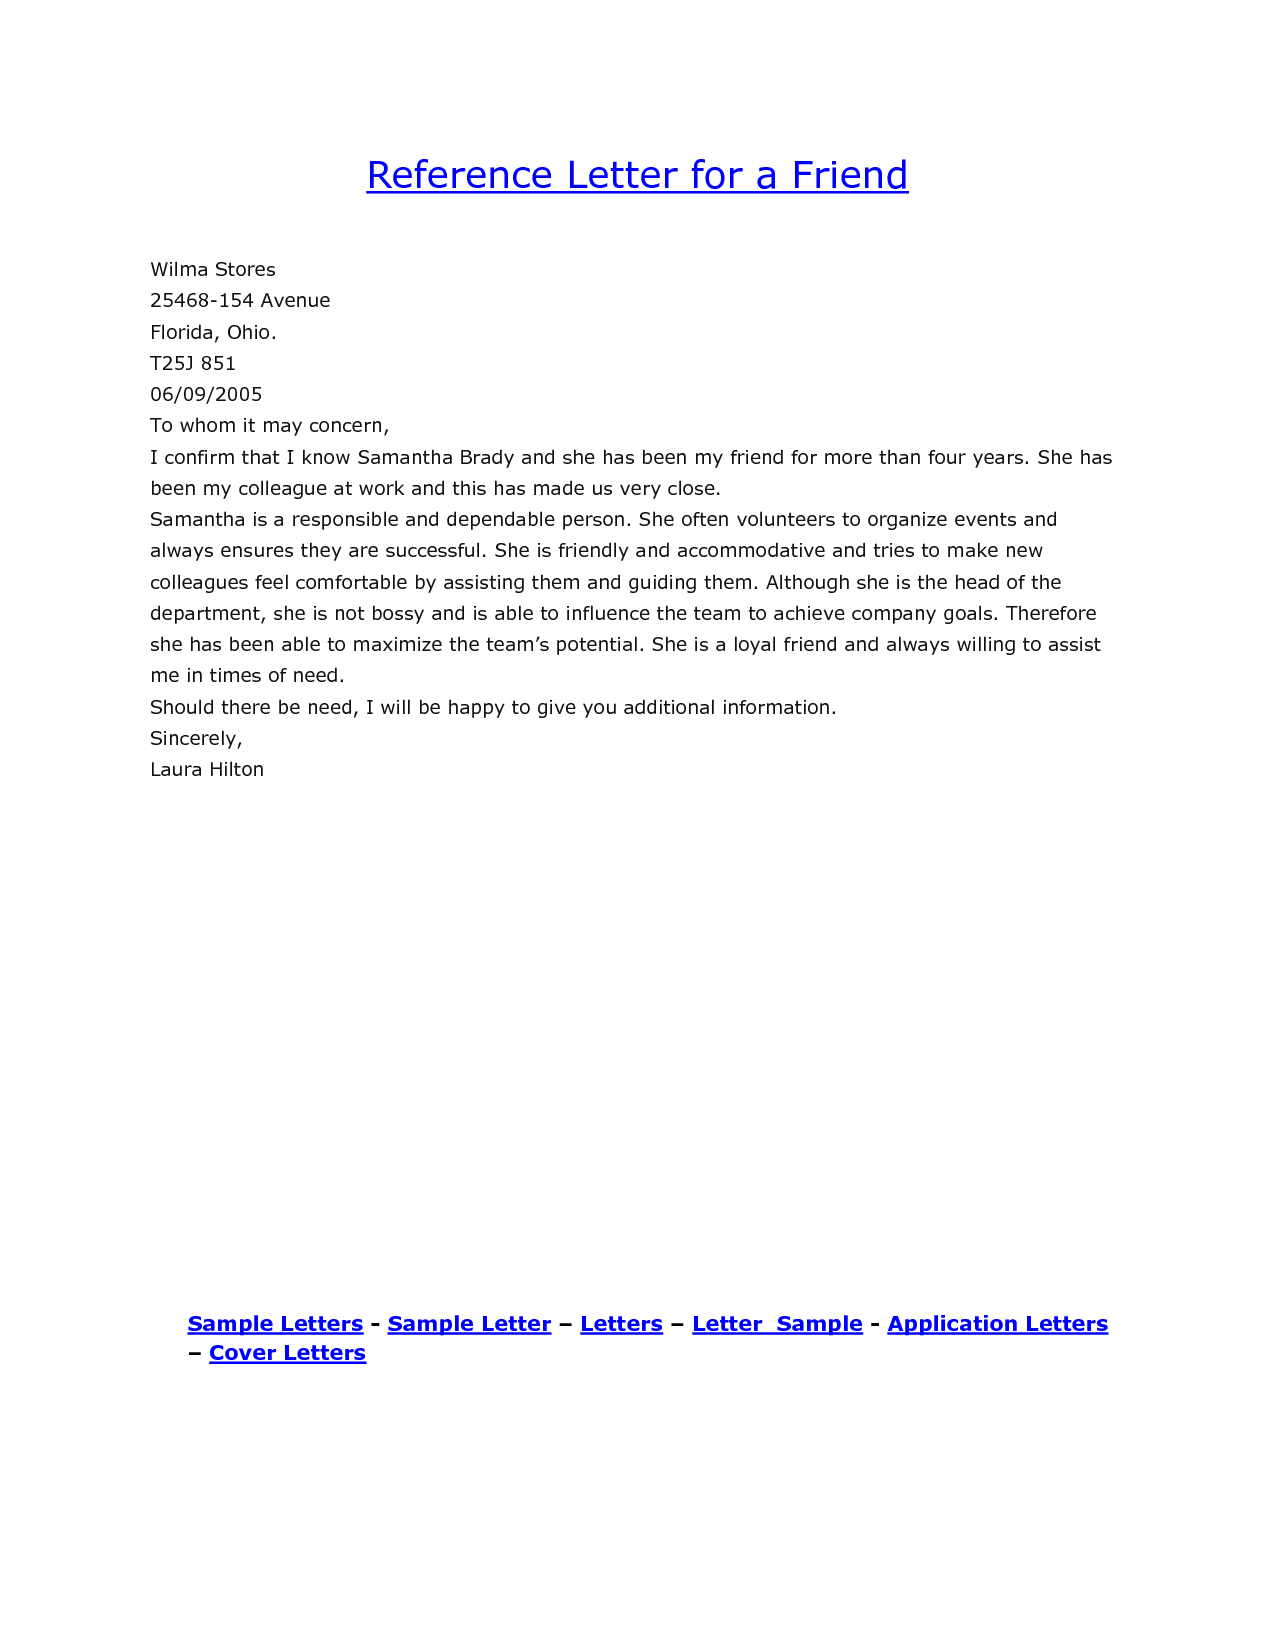 Reference Letter Sample For A Friend Yahoo Search Results within size 1275 X 1650